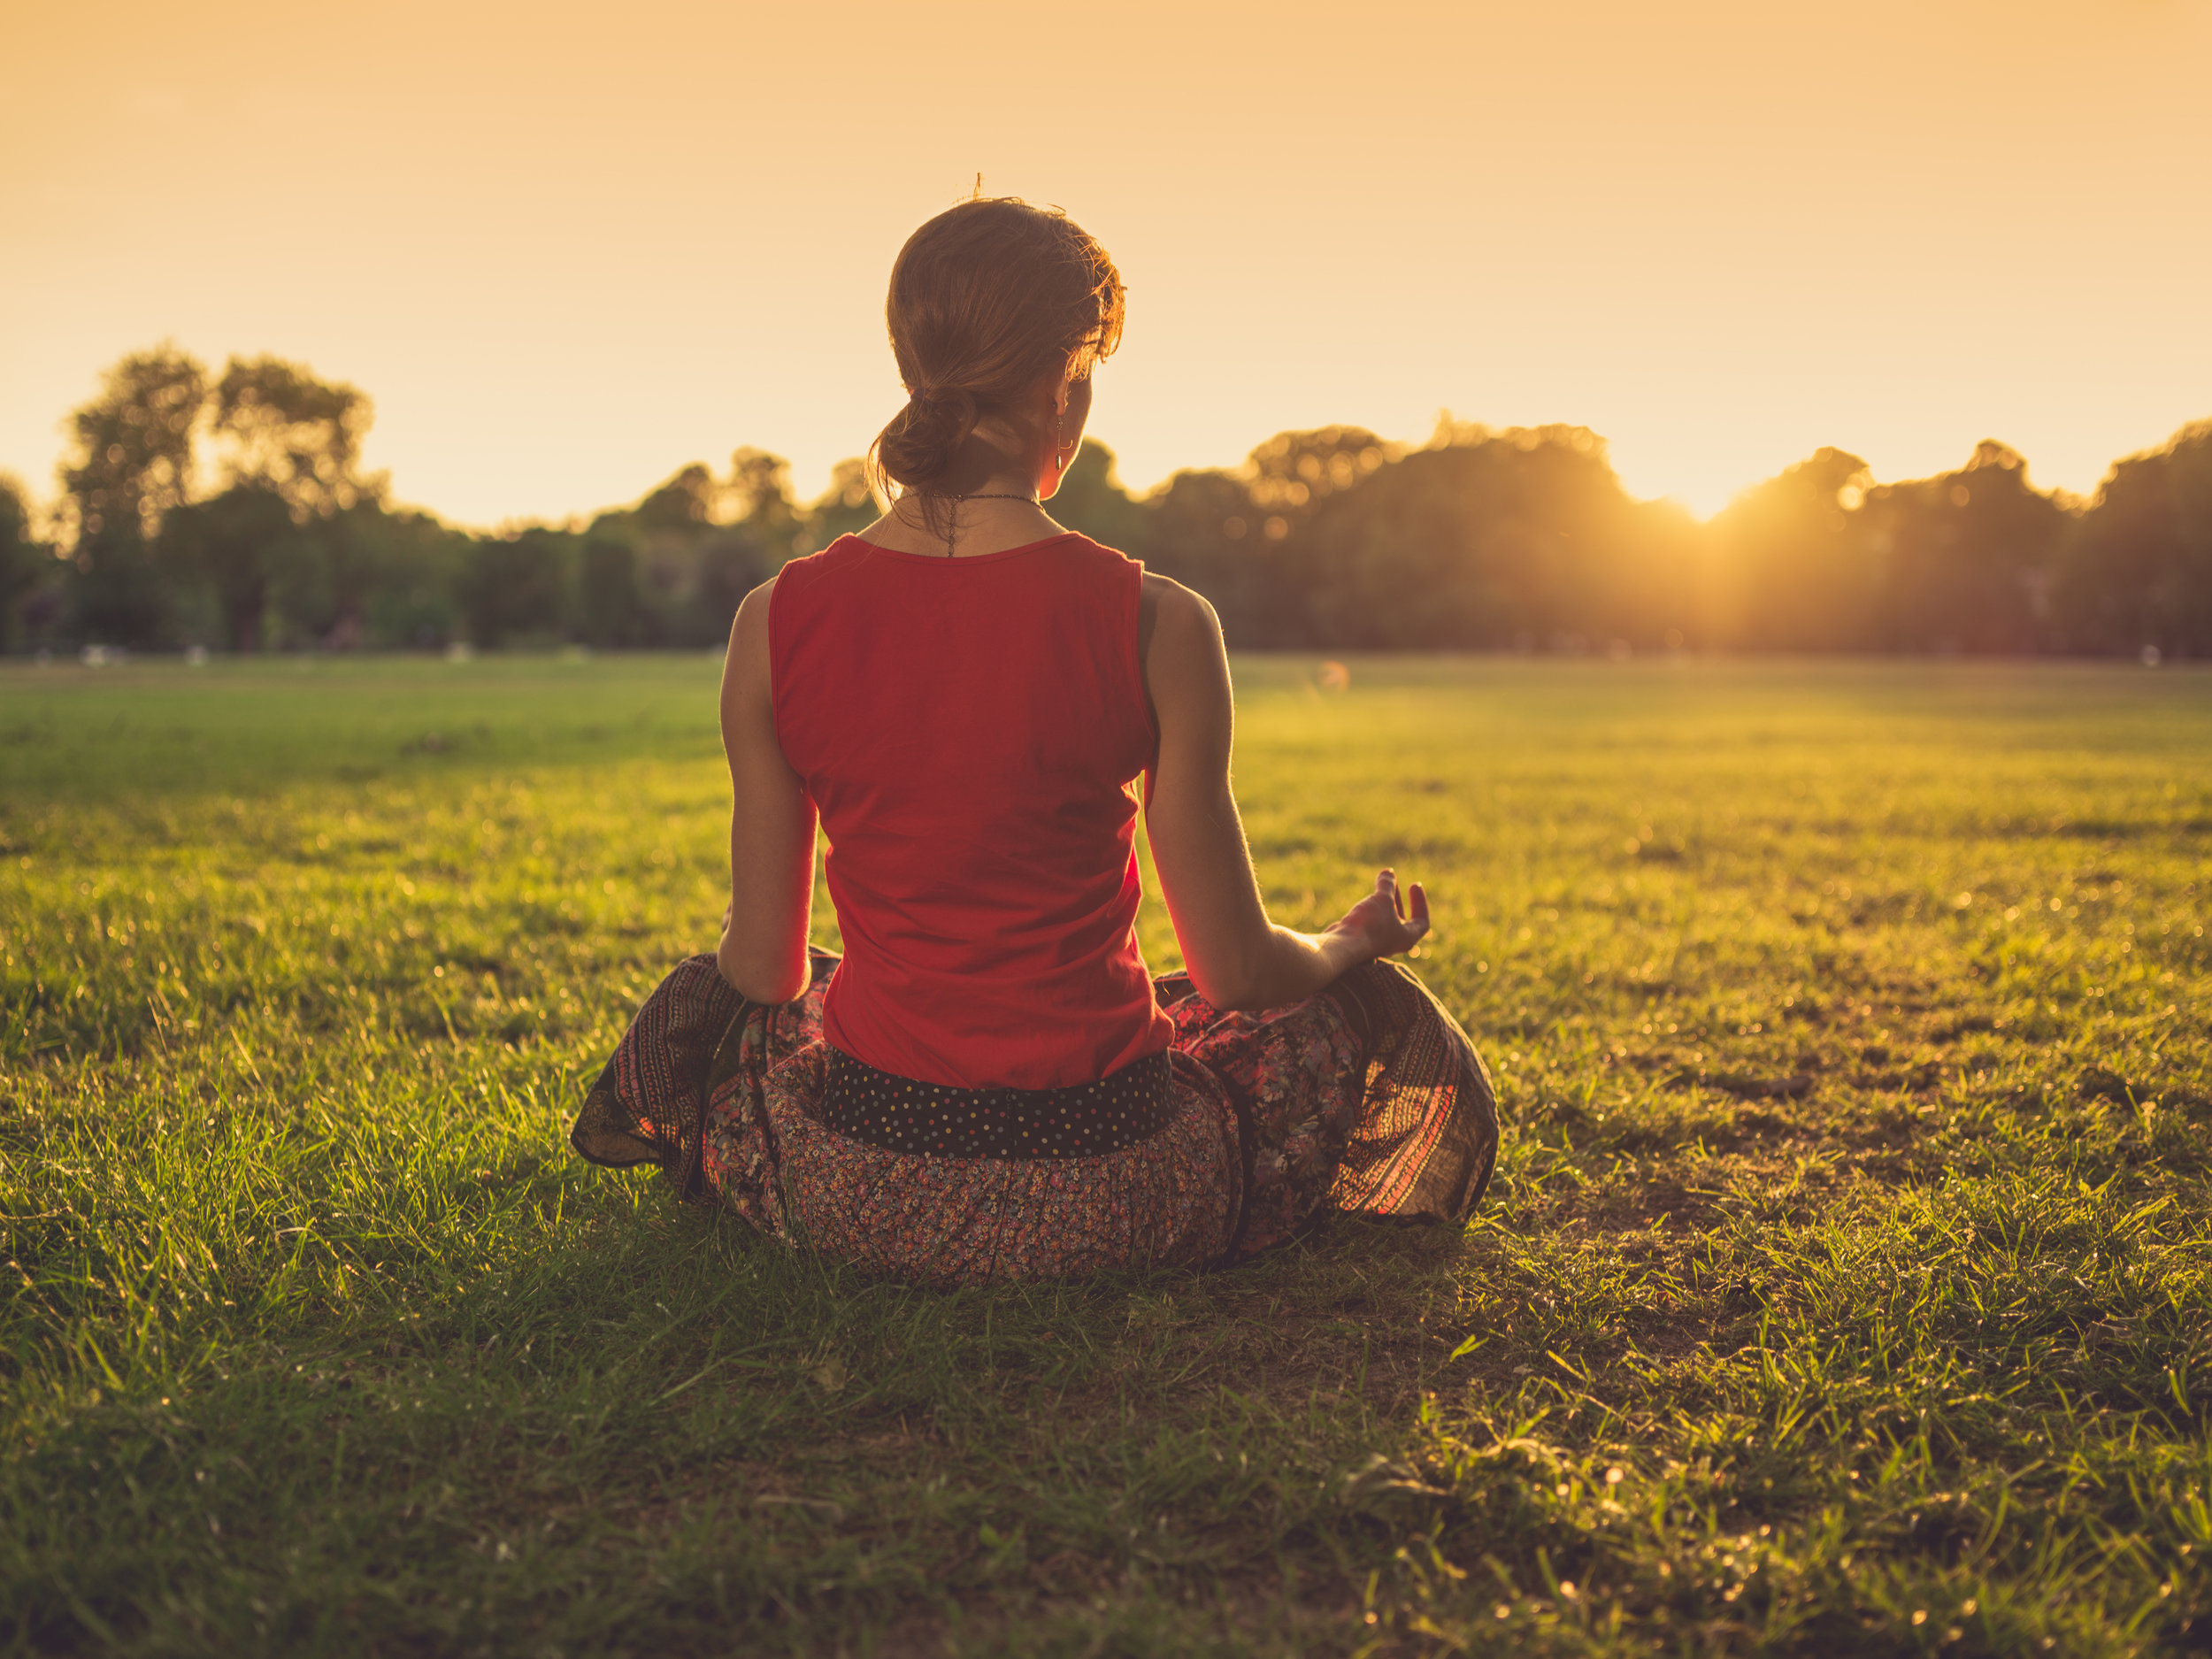 bigstock-Woman-Meditating-In-Park-At-Su-91459358.jpg